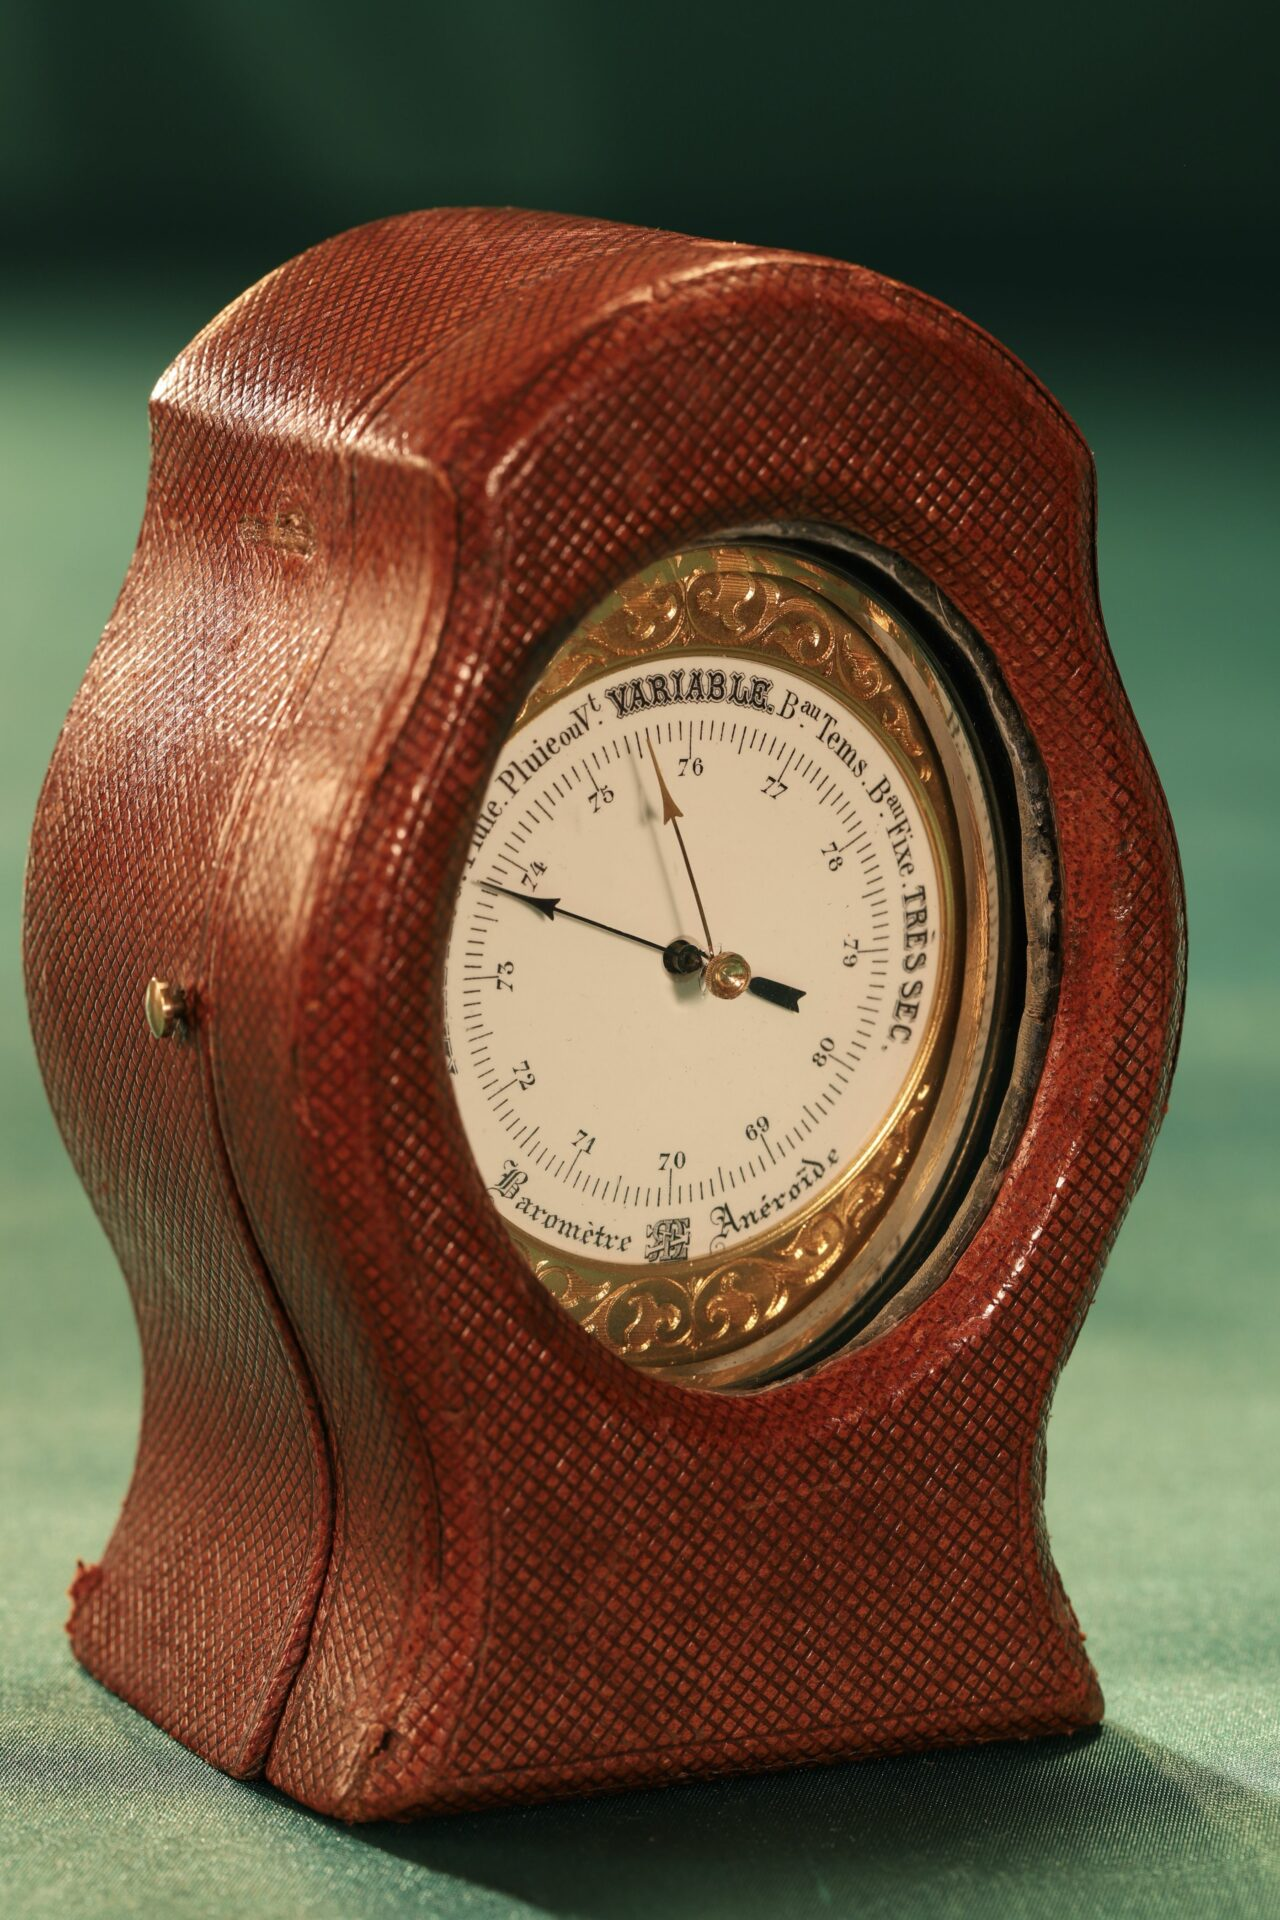 Image of Redier Travel Compendium in Original Travel Case with Barometer in View c1880